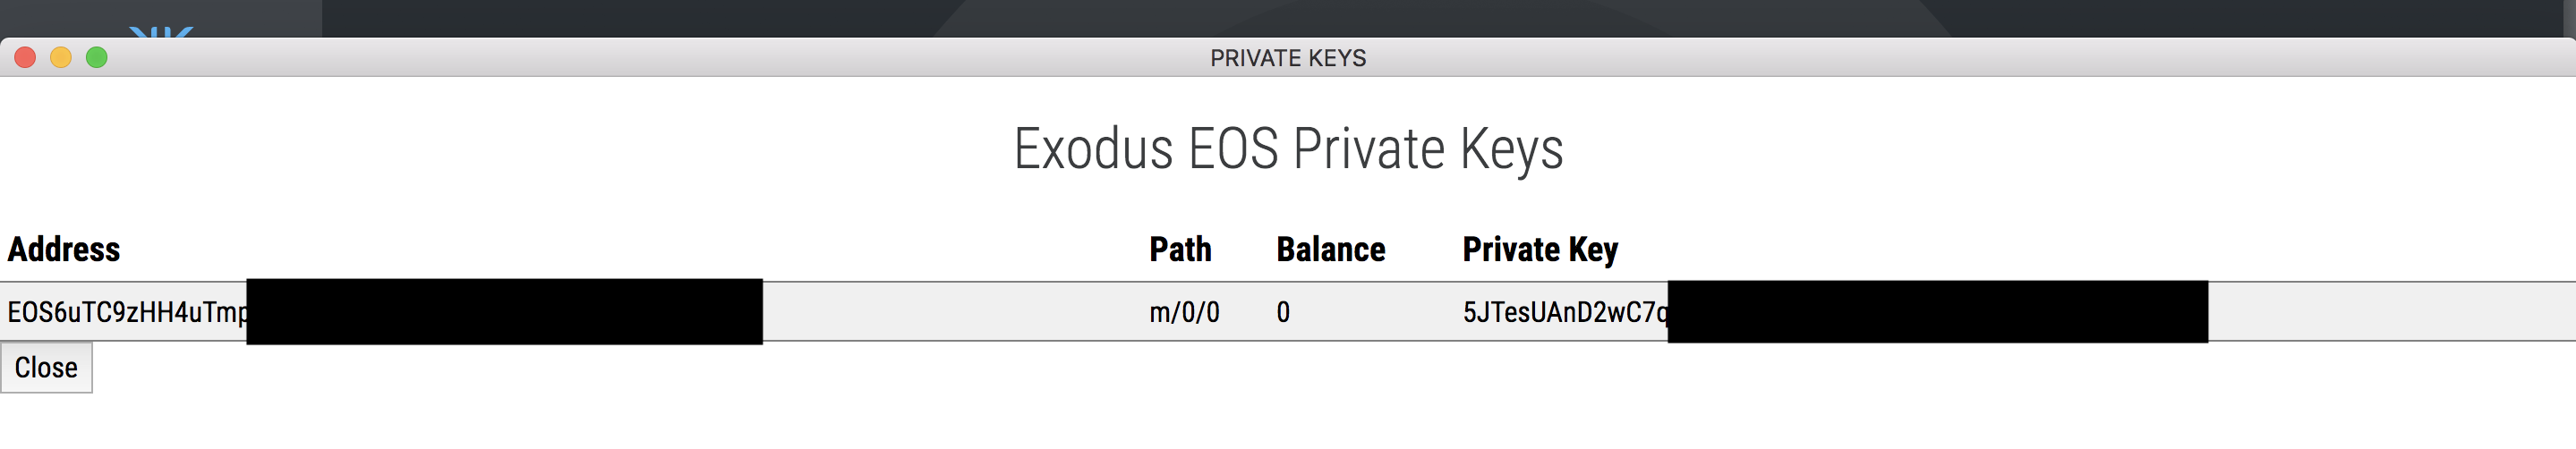 Exodus - View Private Key